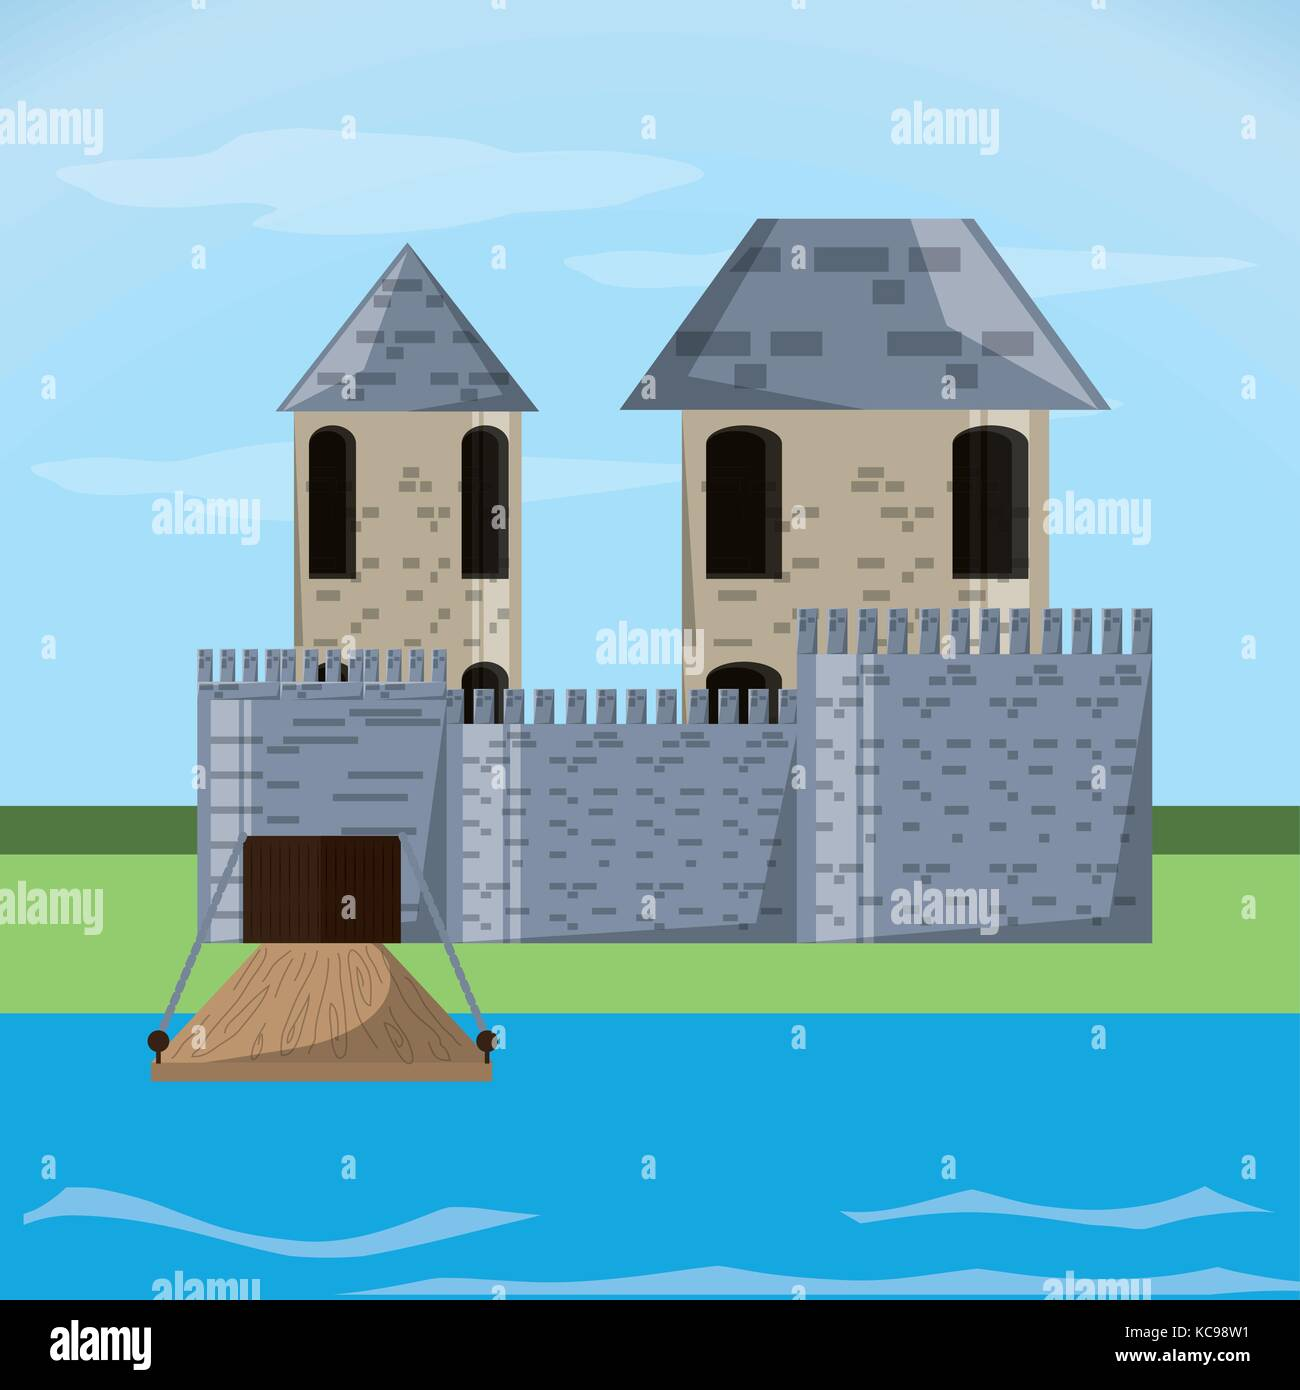 Castle with tower design - Stock Vector